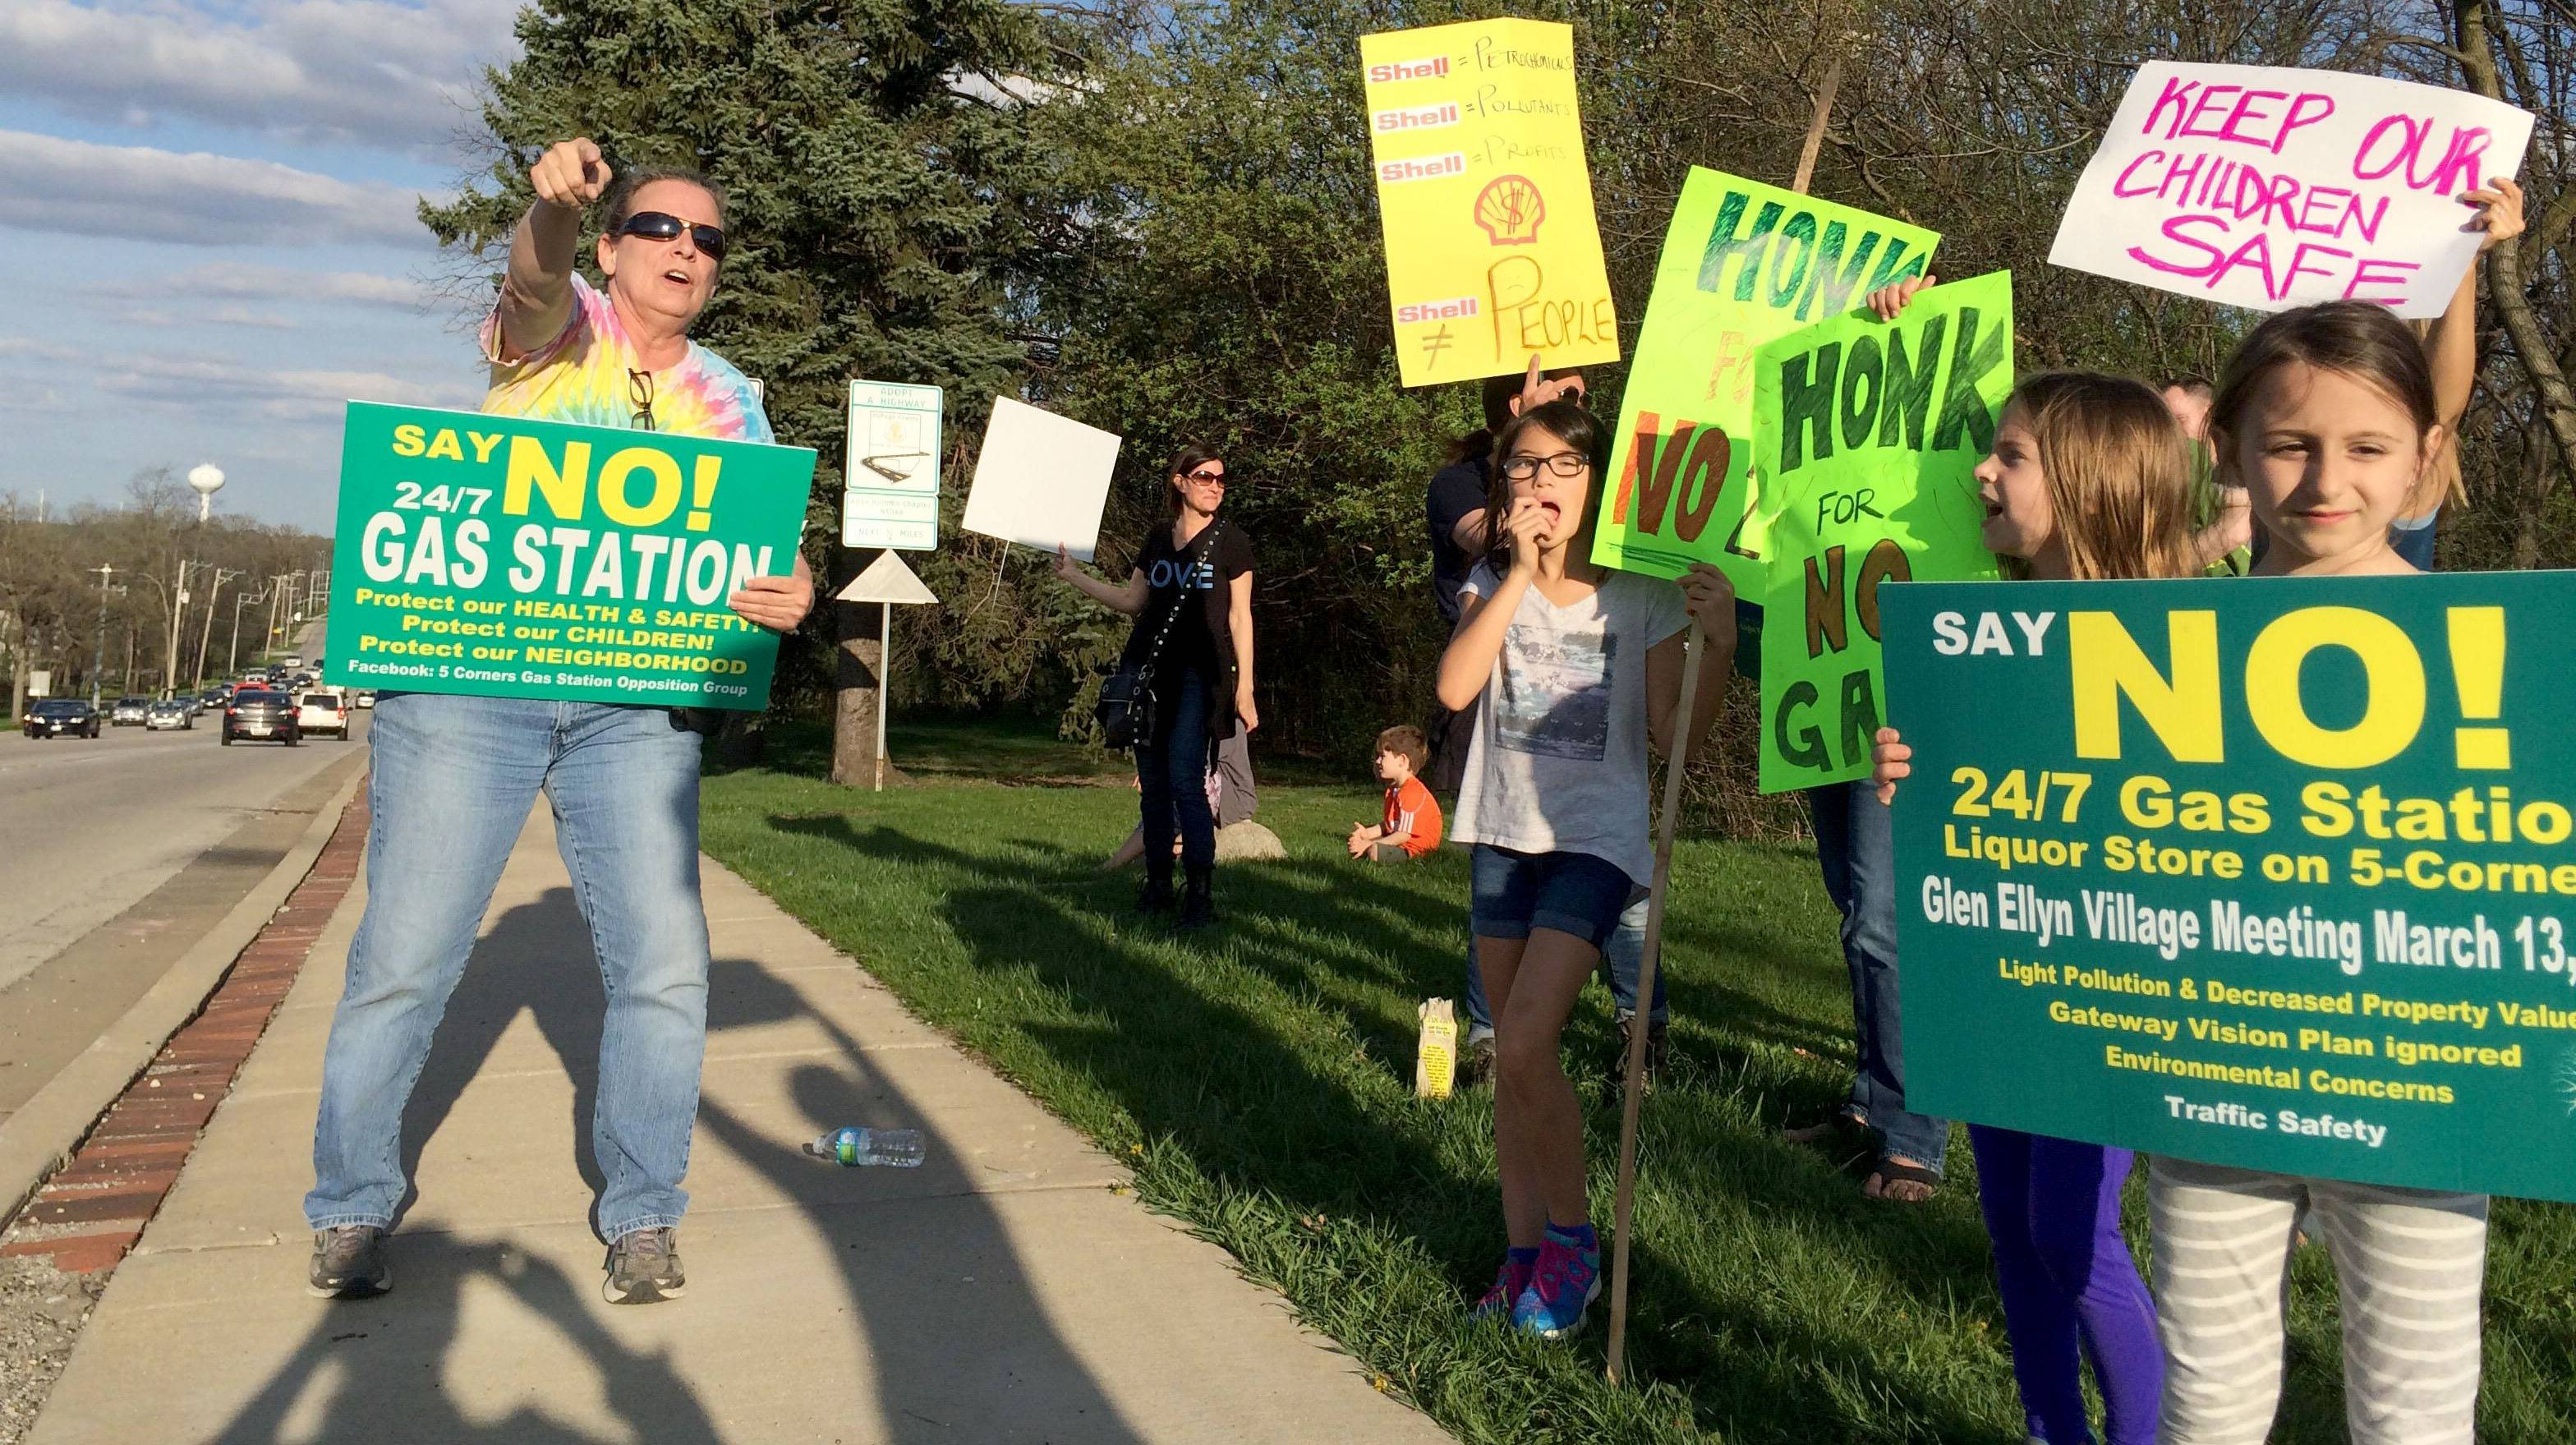 Opposition builds against gas station in Glen Ellyn